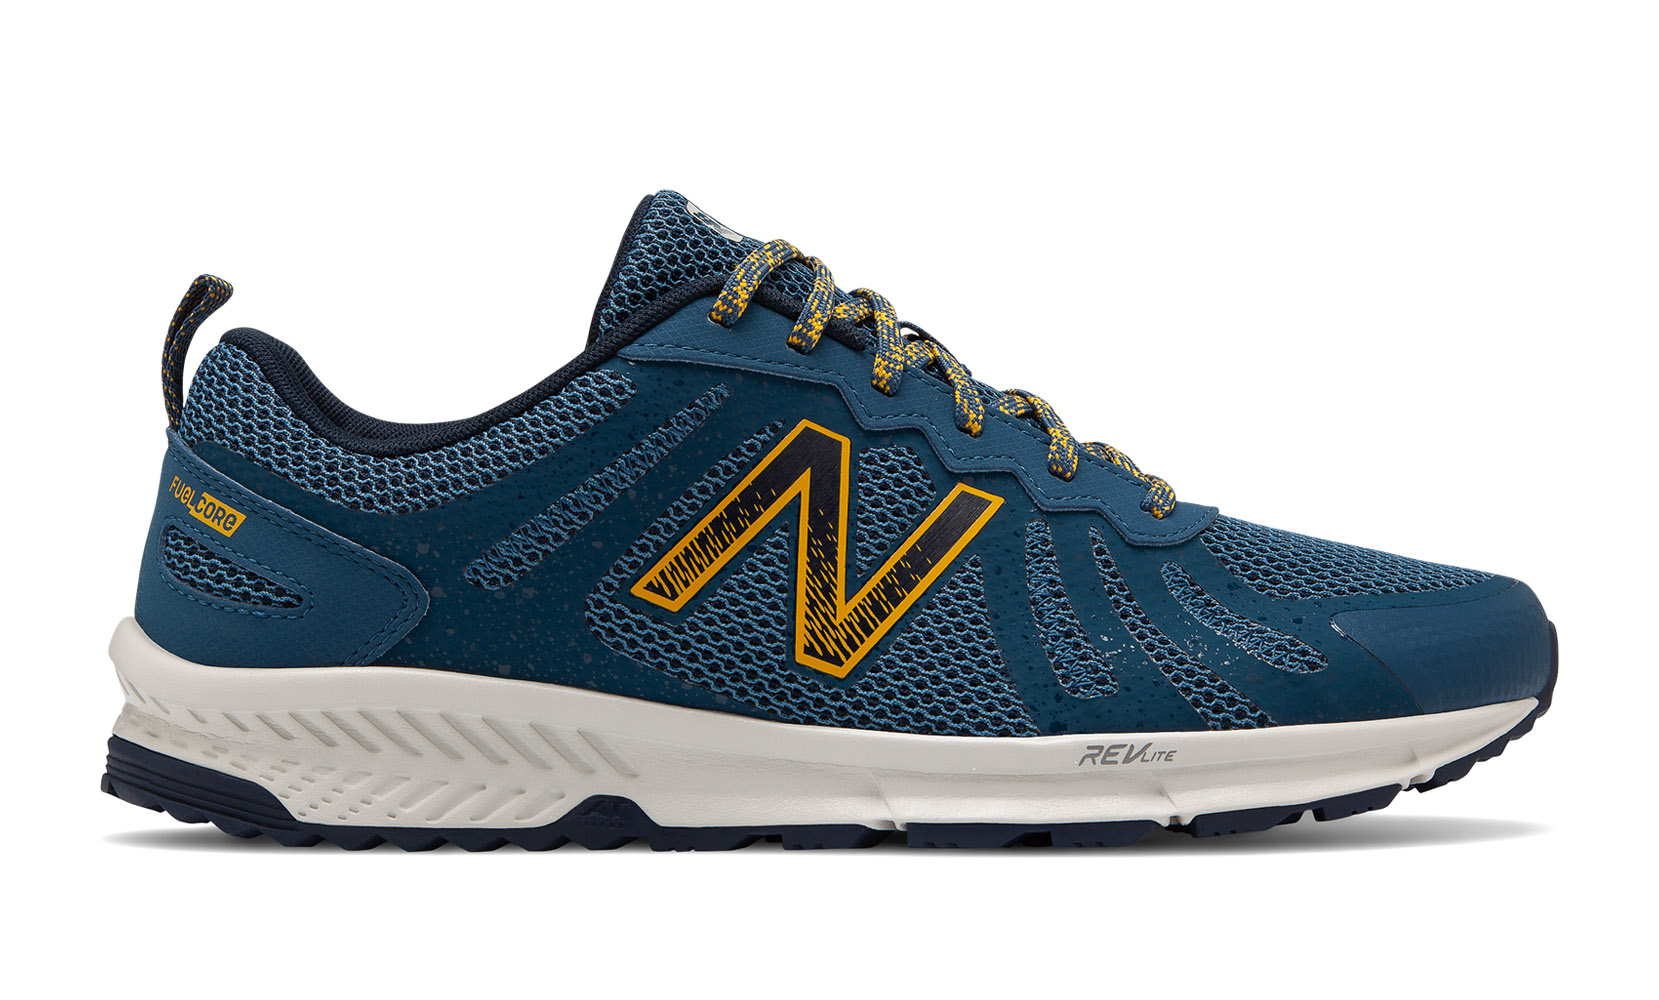 Чоловіче взуття для бігу New Balance Fuel Core Trail 590 v4 MT590RN4 | New Balance